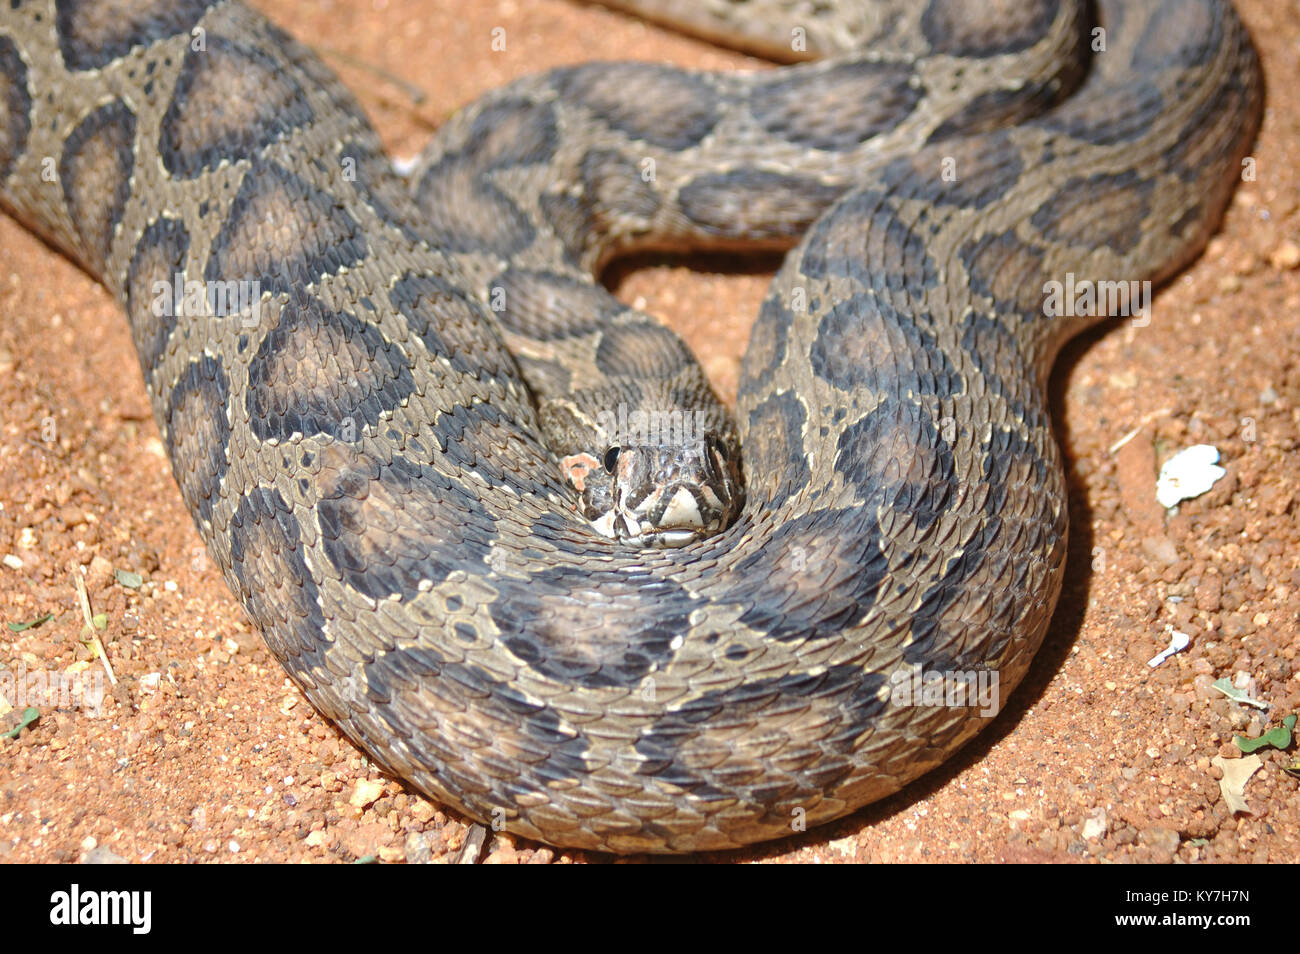 Adult Russell's Viper, Daboia russelii, Tamil Nadu, South India - Stock Image